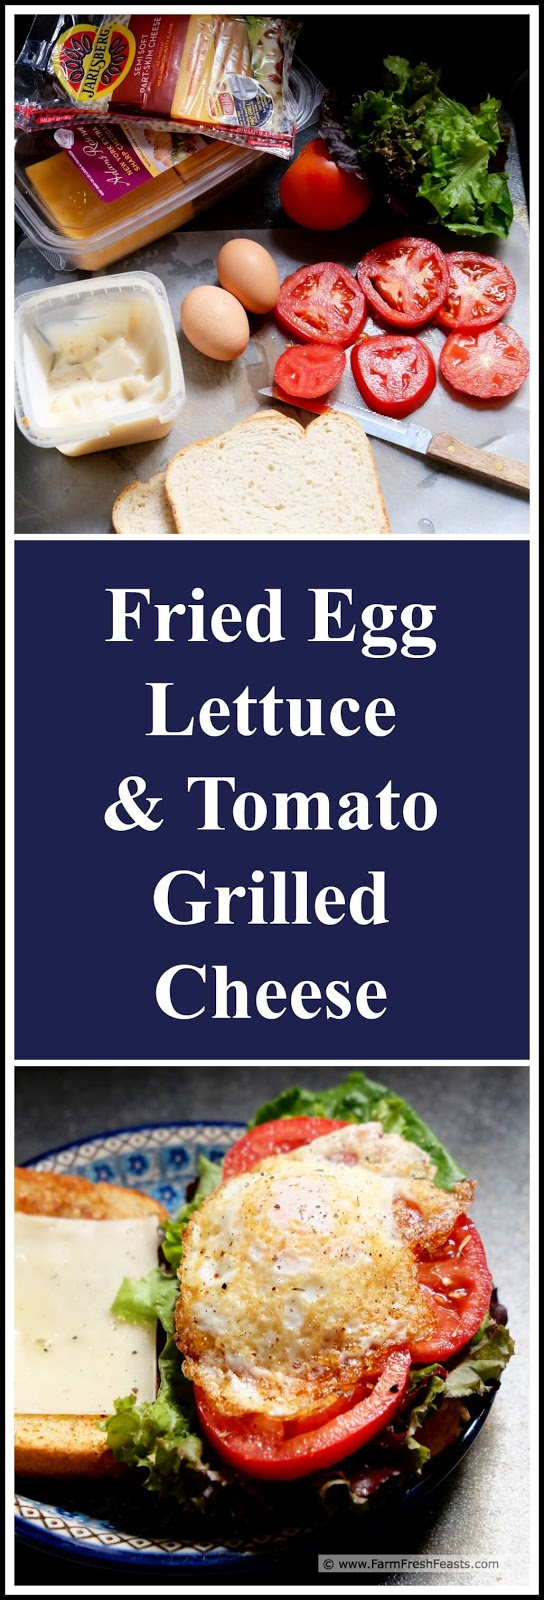 ... Fresh Feasts: Fried Egg, Lettuce, and Tomato Grilled Cheese Sandwich